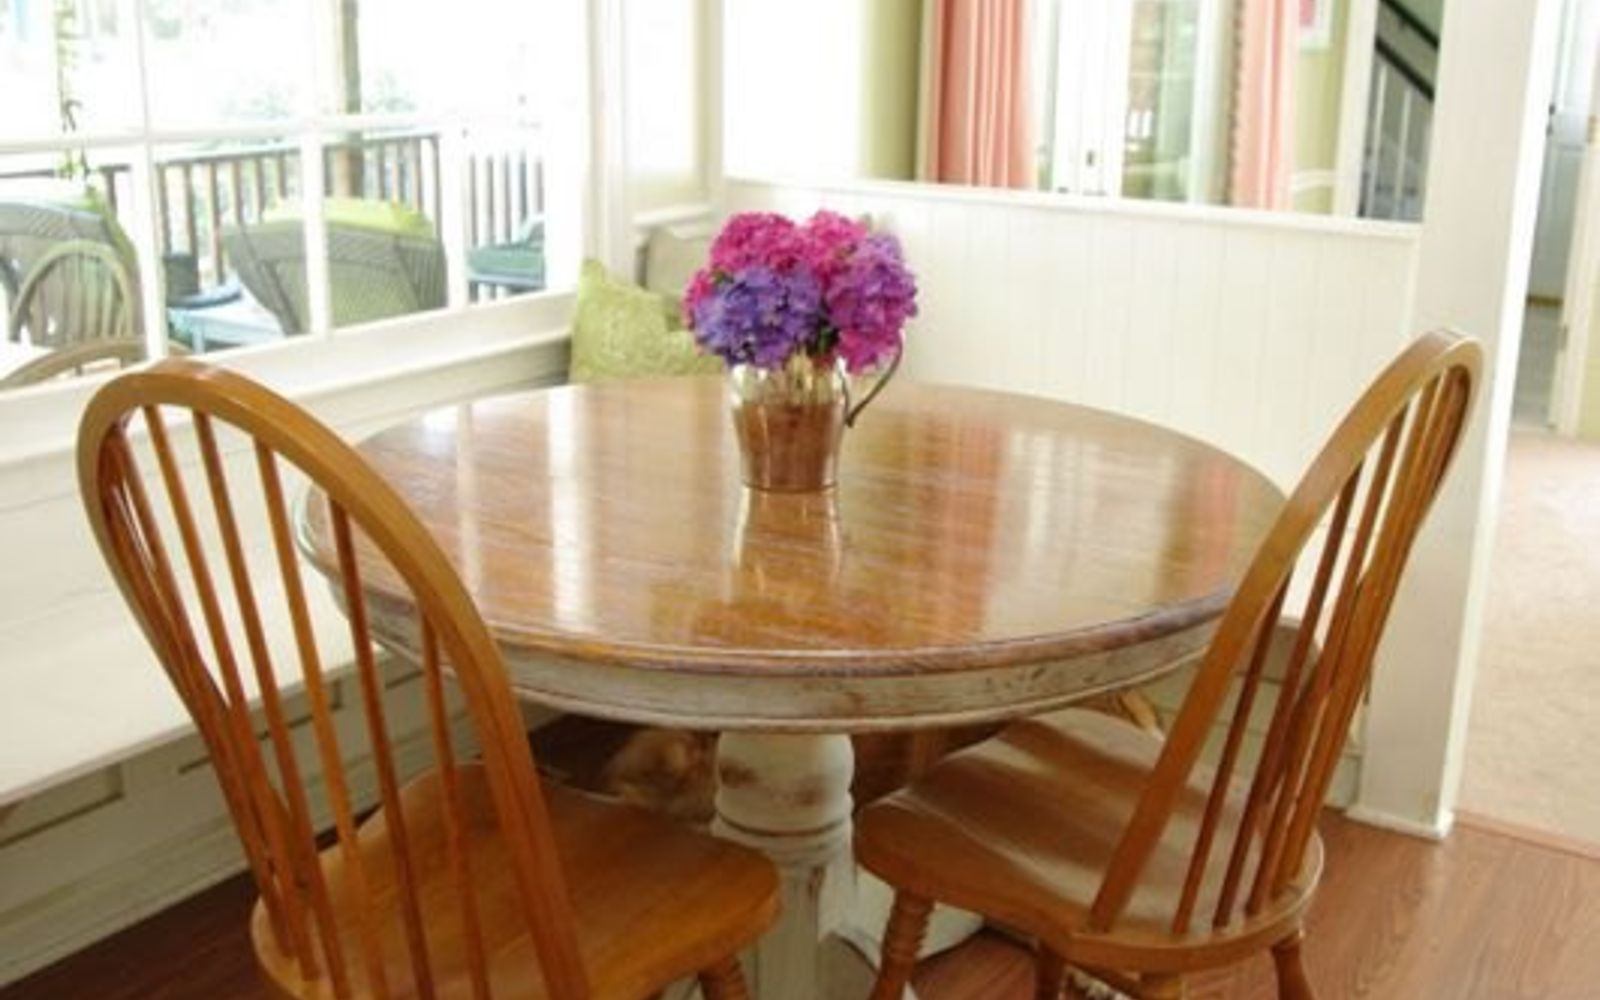 s 13 gorgeous ways to bring your worn kitchen table back to life, kitchen design, painted furniture, Add an aged look to the wood with liming wax